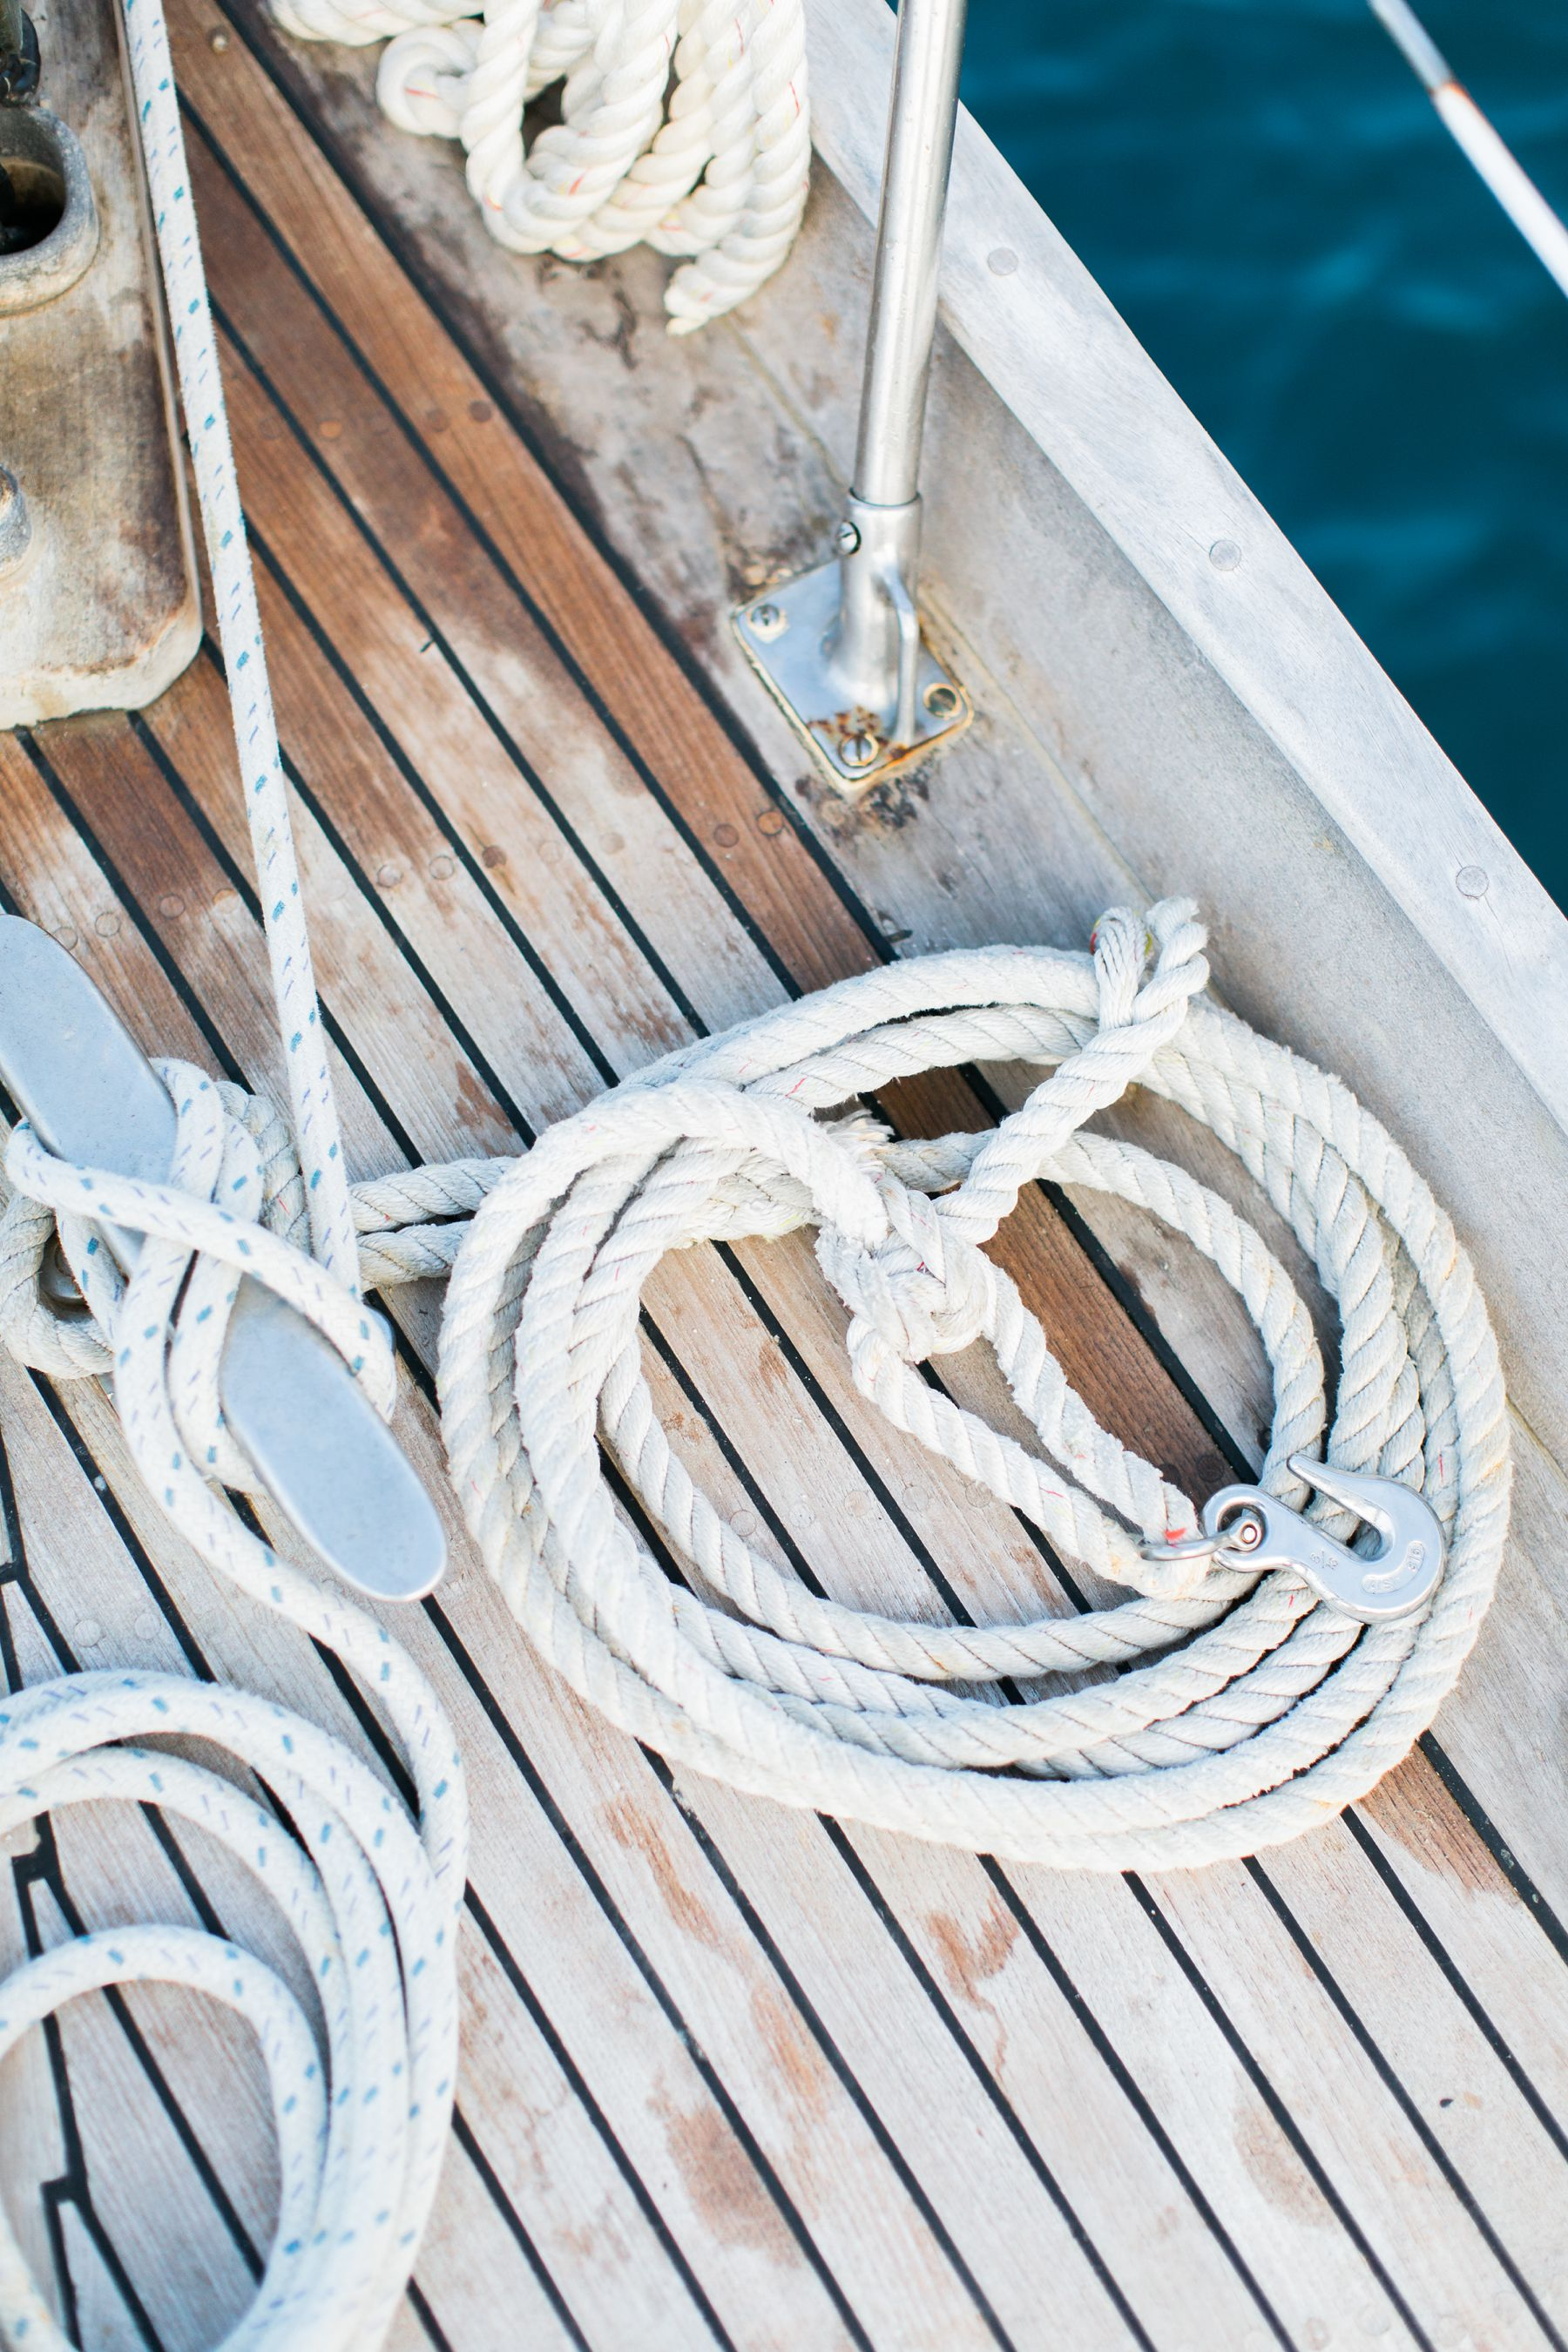 DESTINATION-WEDDING-SAIL-BOAT-ELOPEMENT-VIRGIN-ISLANDS-ST-JOHN-SAVANAH-LOFTUS_0003.jpg